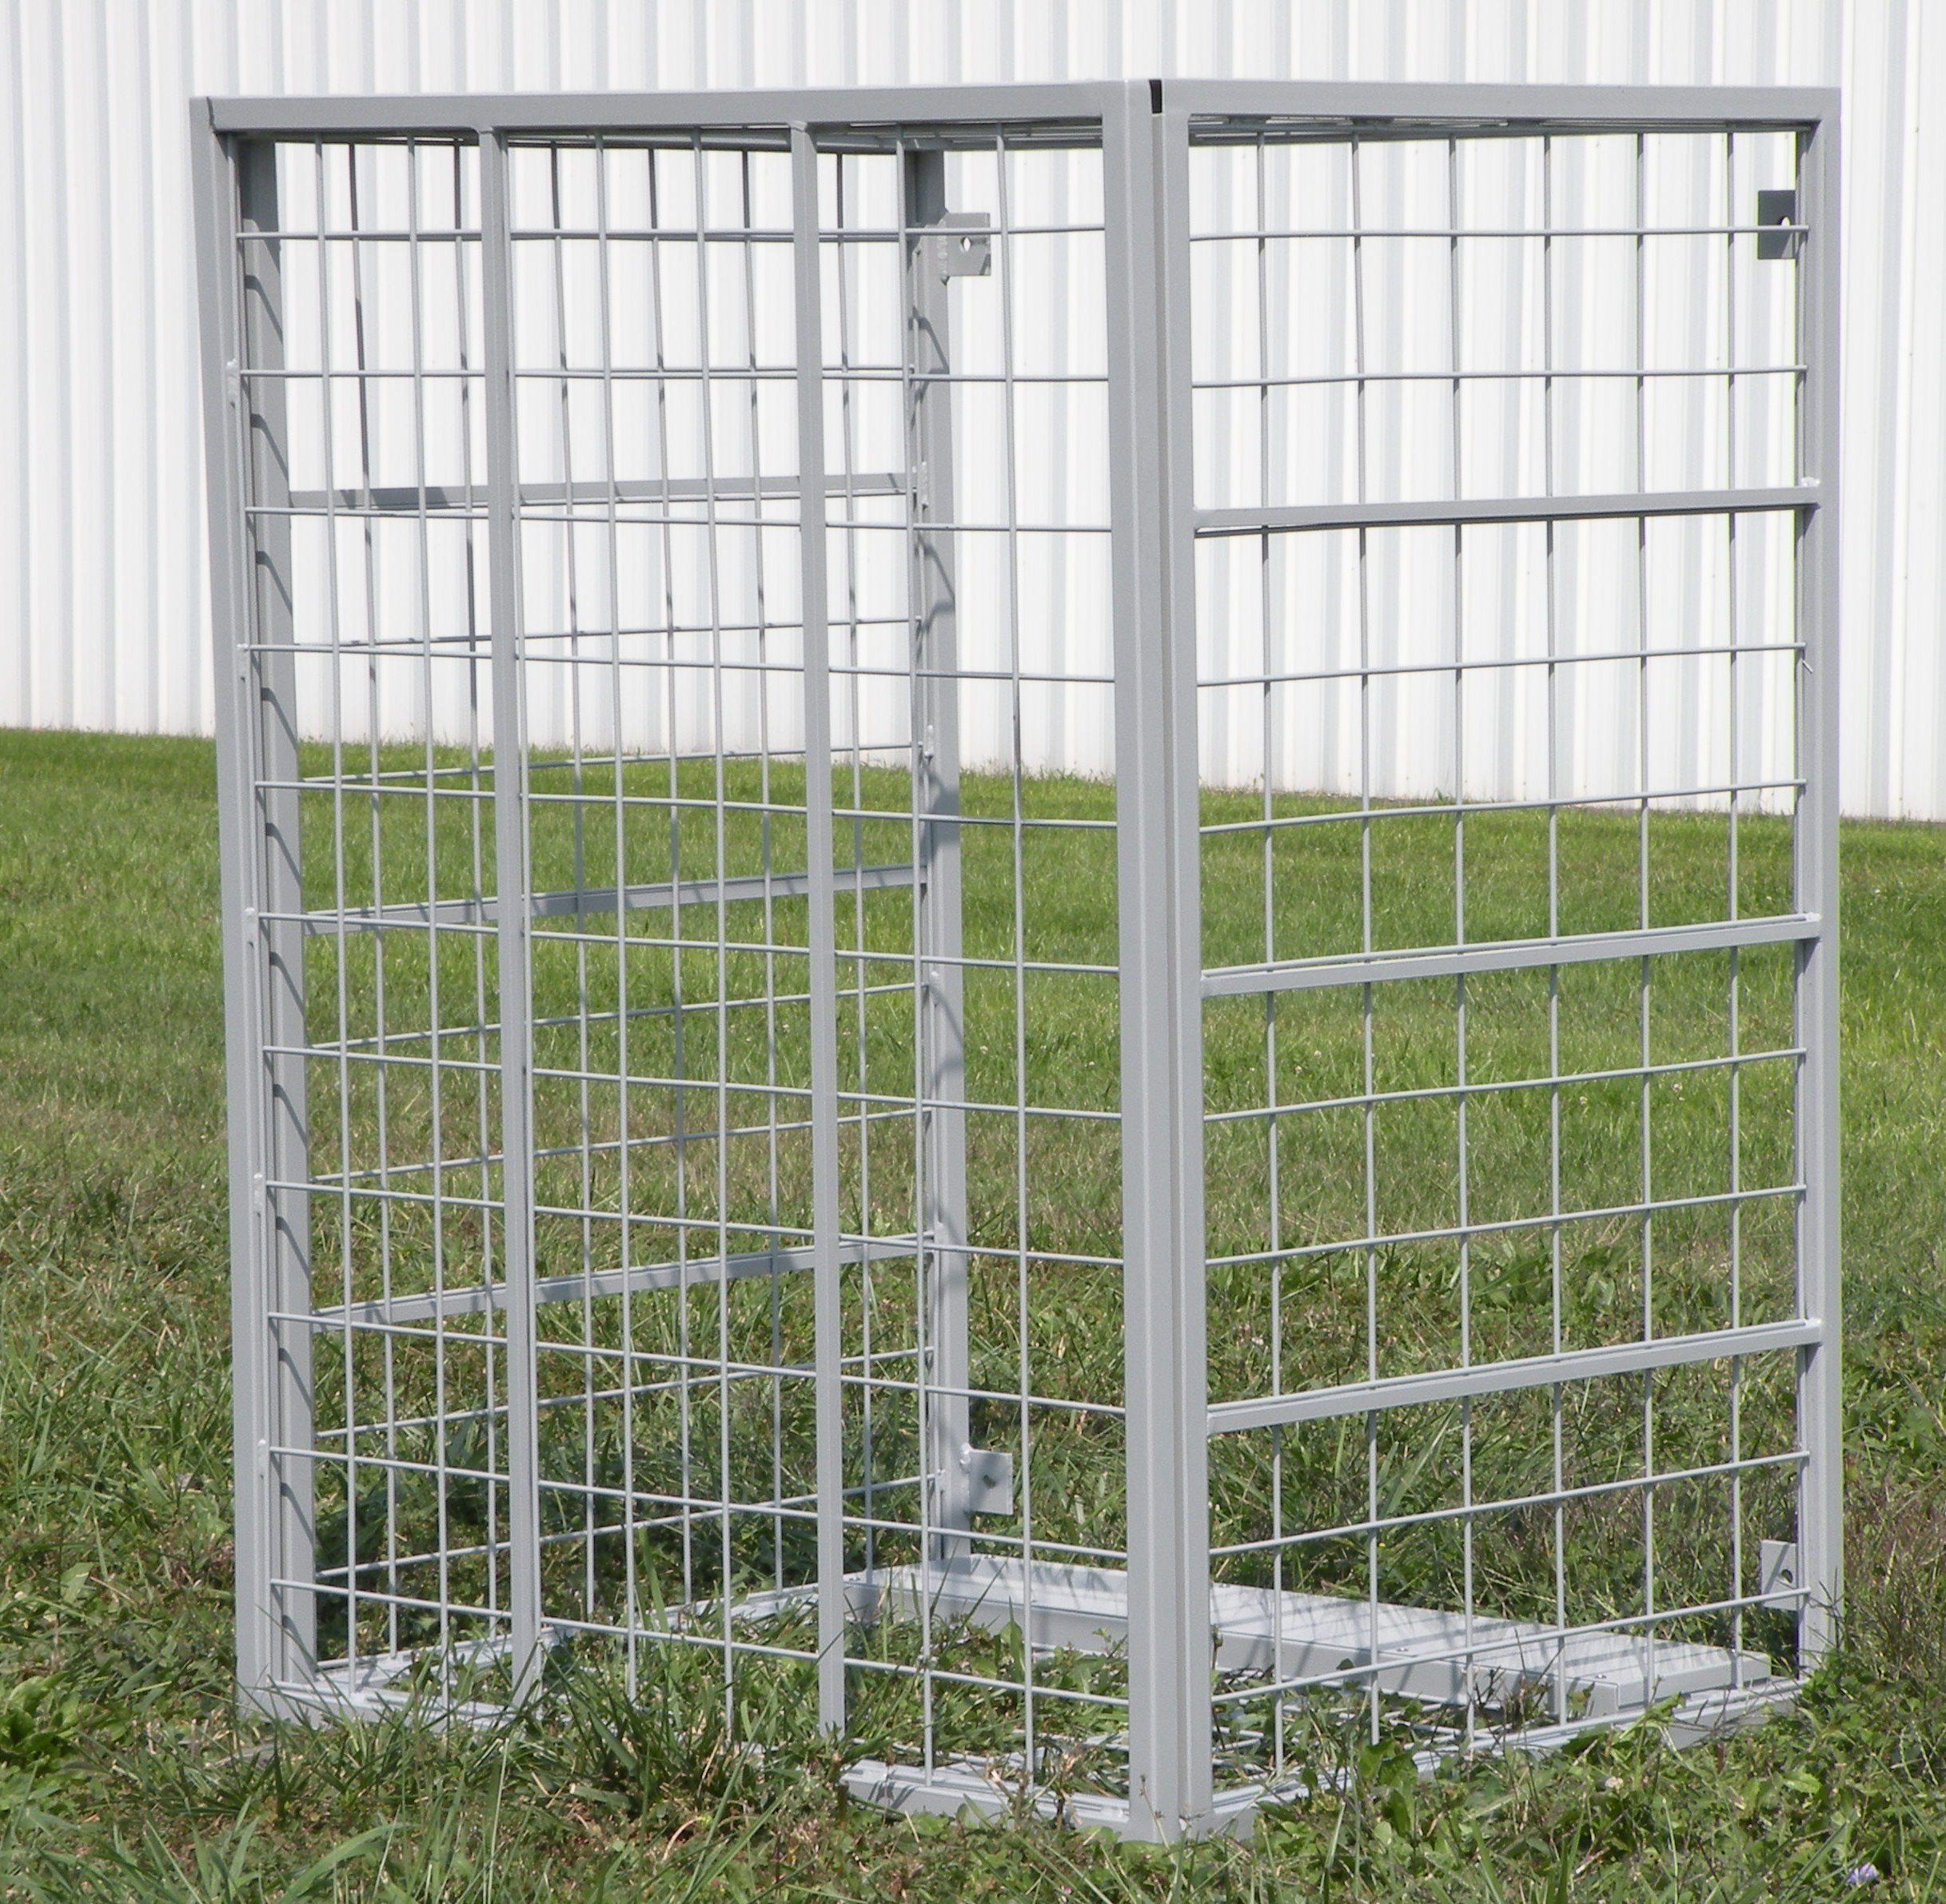 Vertical Theft Deterrent Cage